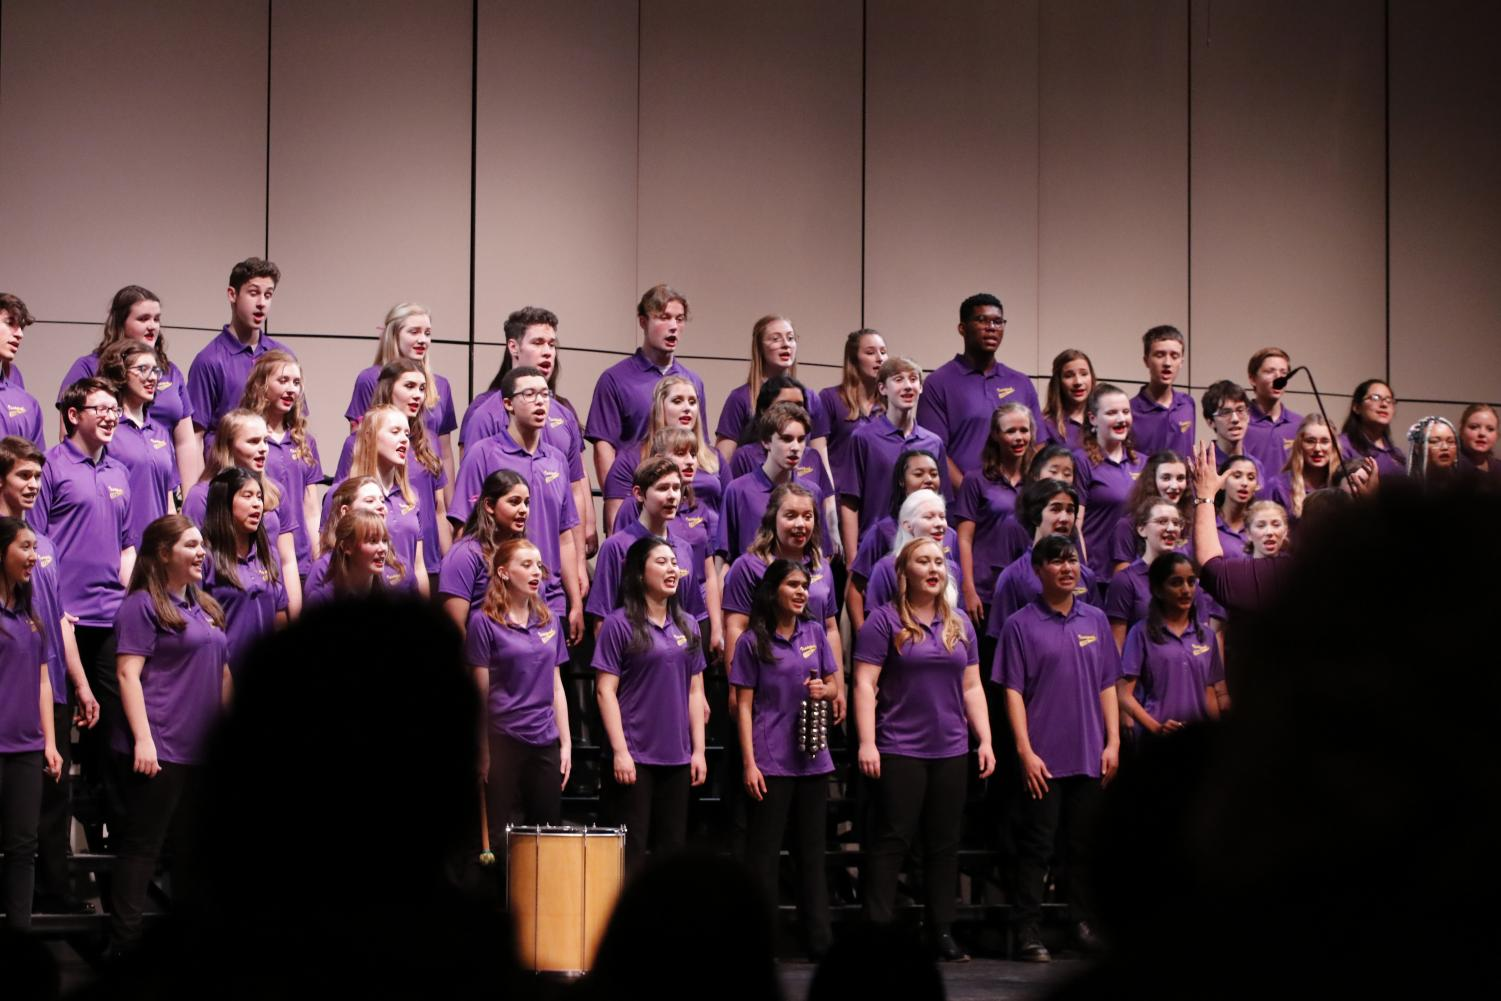 LARGE ENSEMBLE: Concert Chorale is the final group to perform at the annual Candlelight Concert.